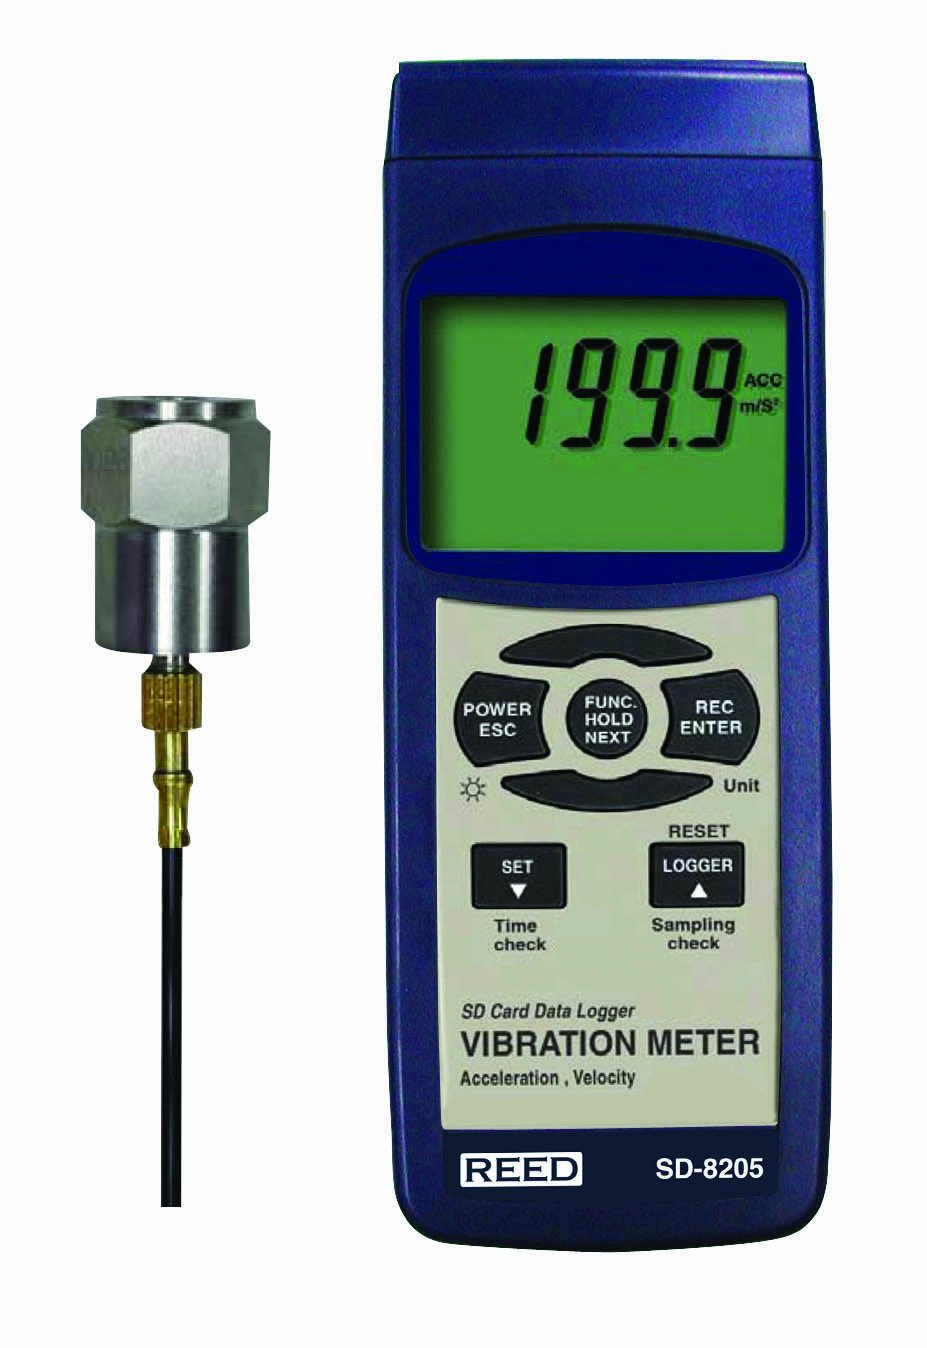 Reed SD-8205 Vibration Meter and Data Logger, 0.1 mm/s Resolution, +/-5 Percent Accuracy, 0.5 to 199.9 mm/s Velocity Range